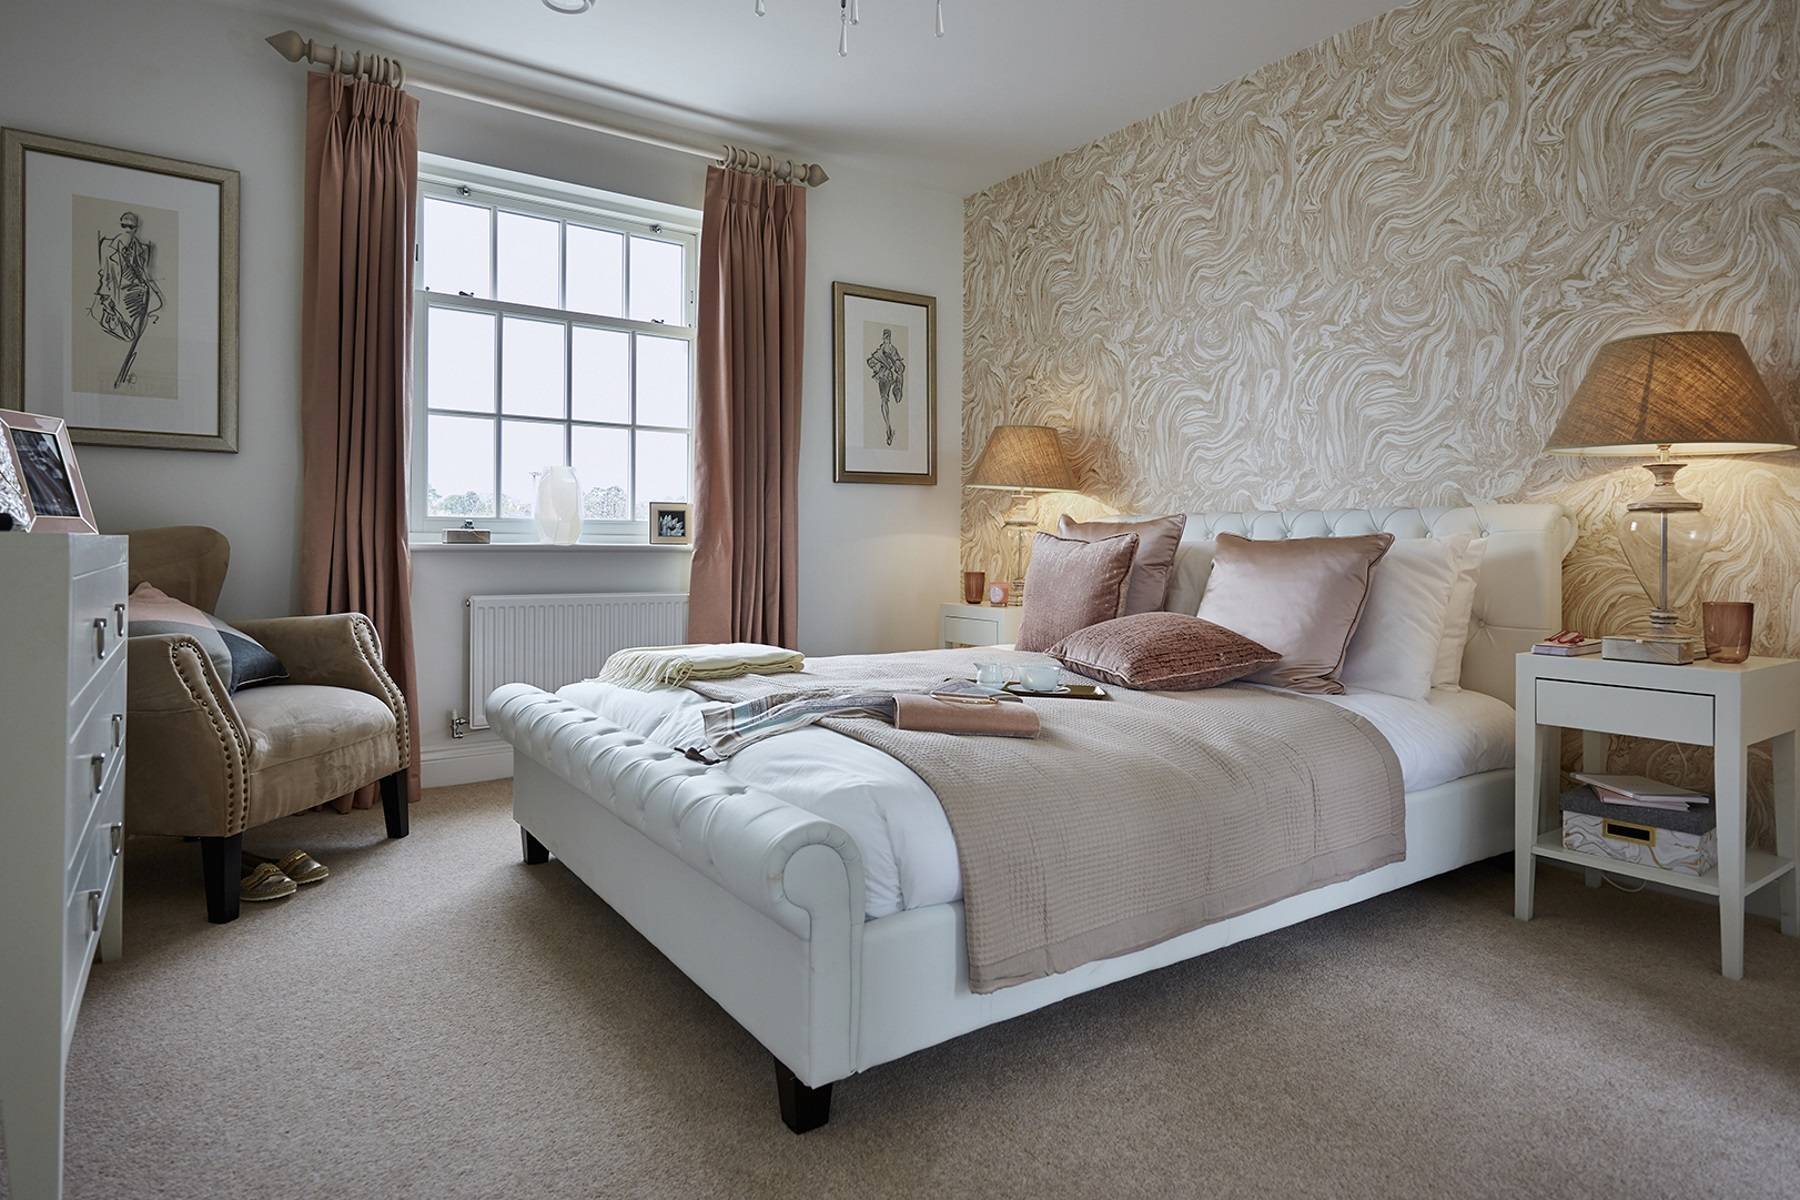 TW Exeter - Sherford - Cherry Show home bedroom 2